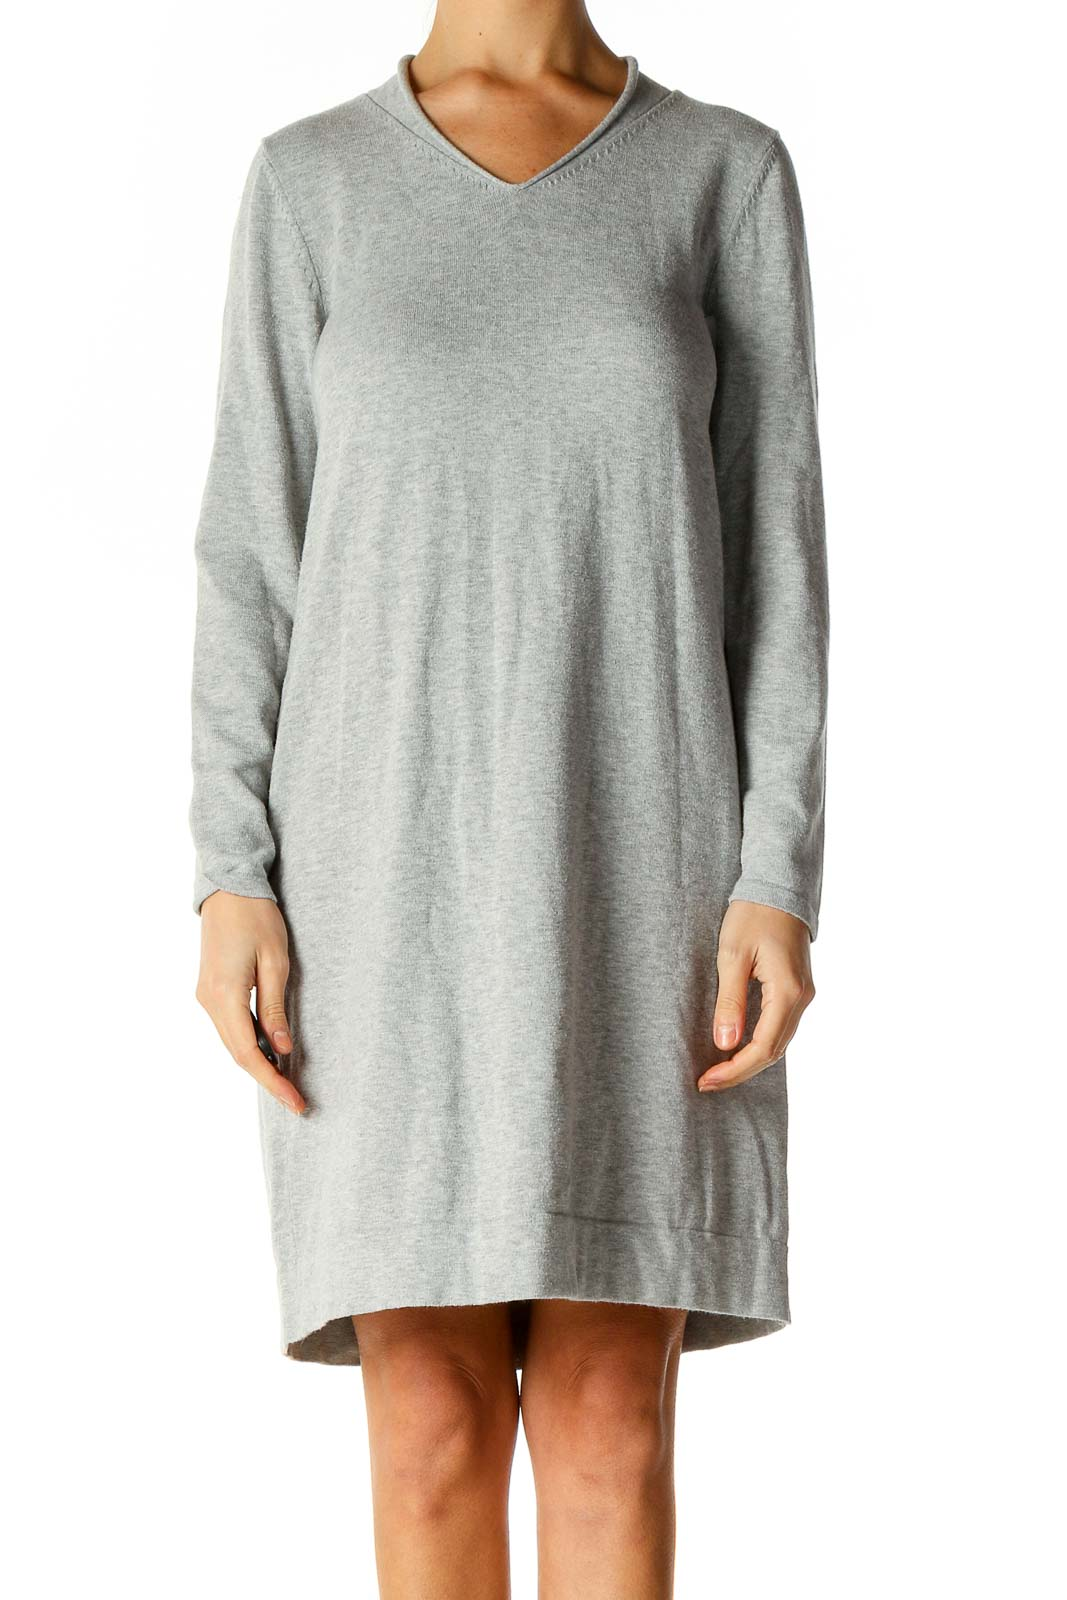 Green Solid Classic Shift Dress Front